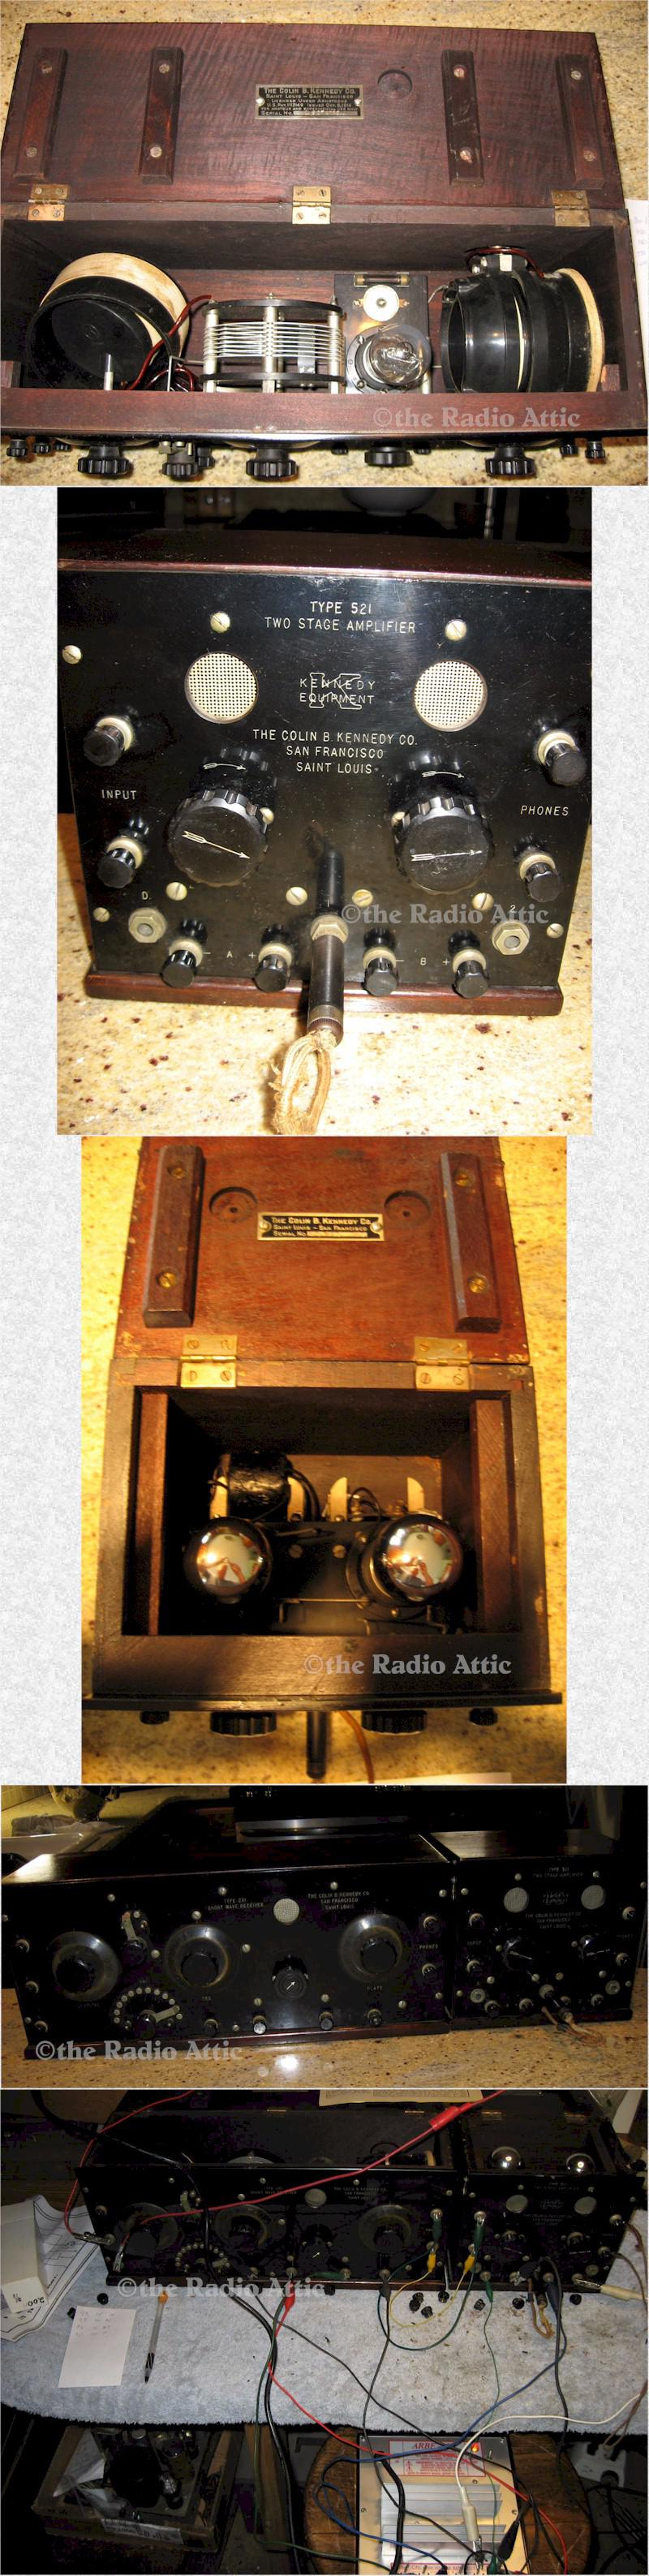 Colin B. Kennedy 281/521 Receiver with Amp (1921)